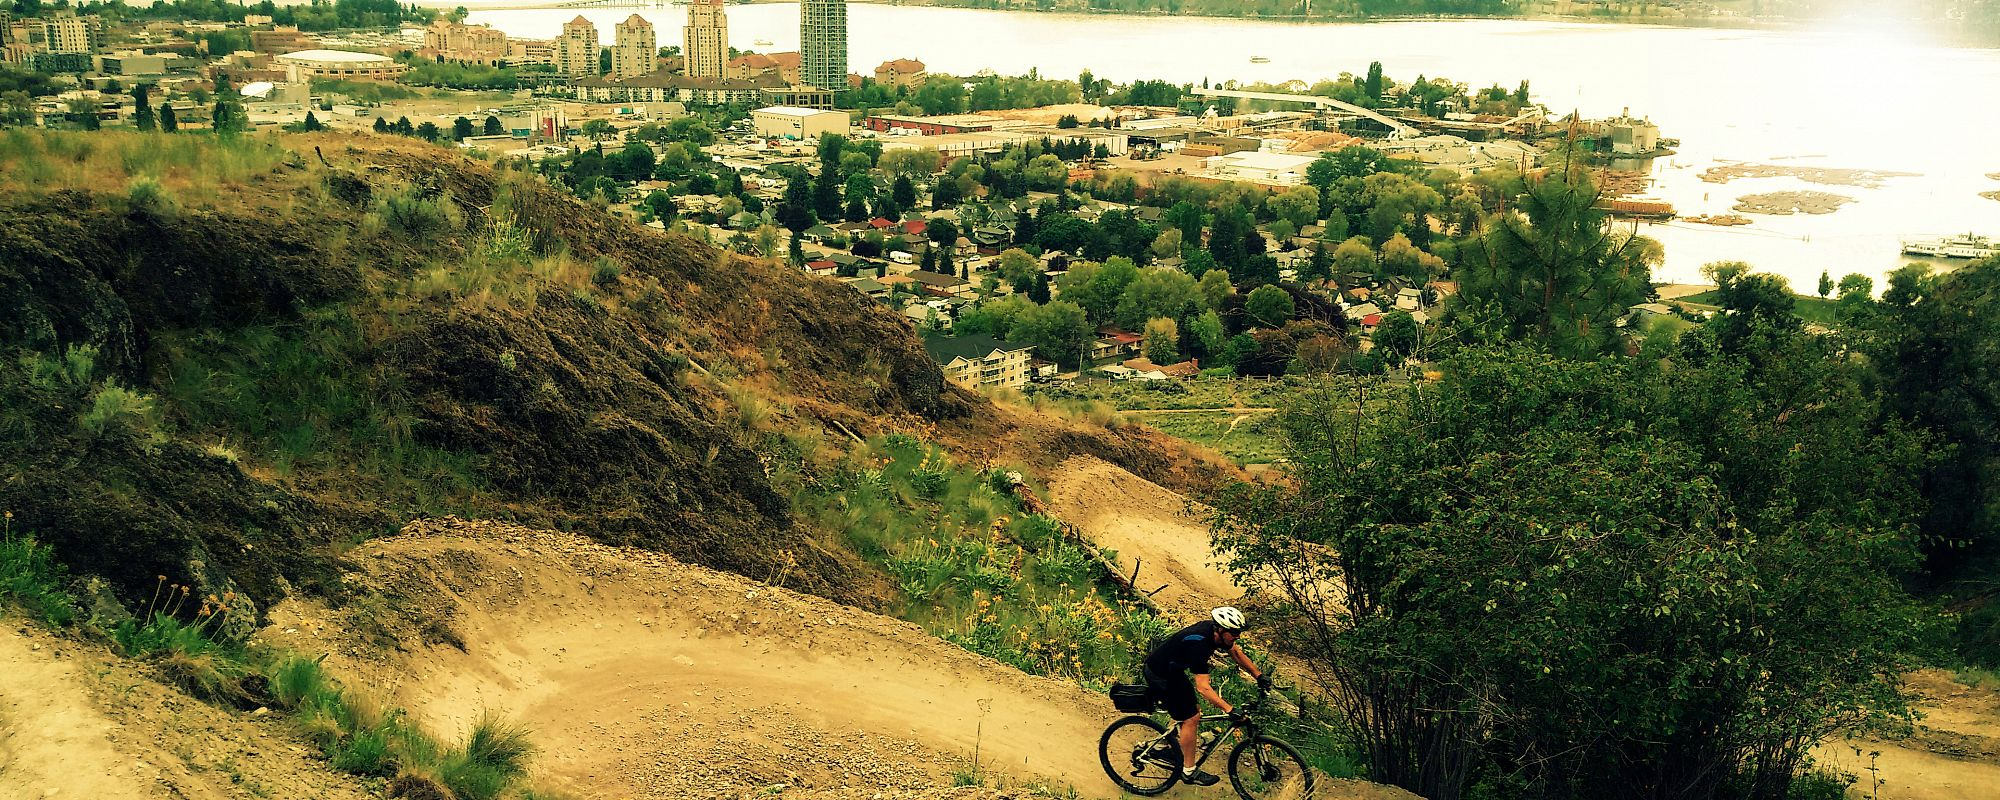 Biking in Kelowna